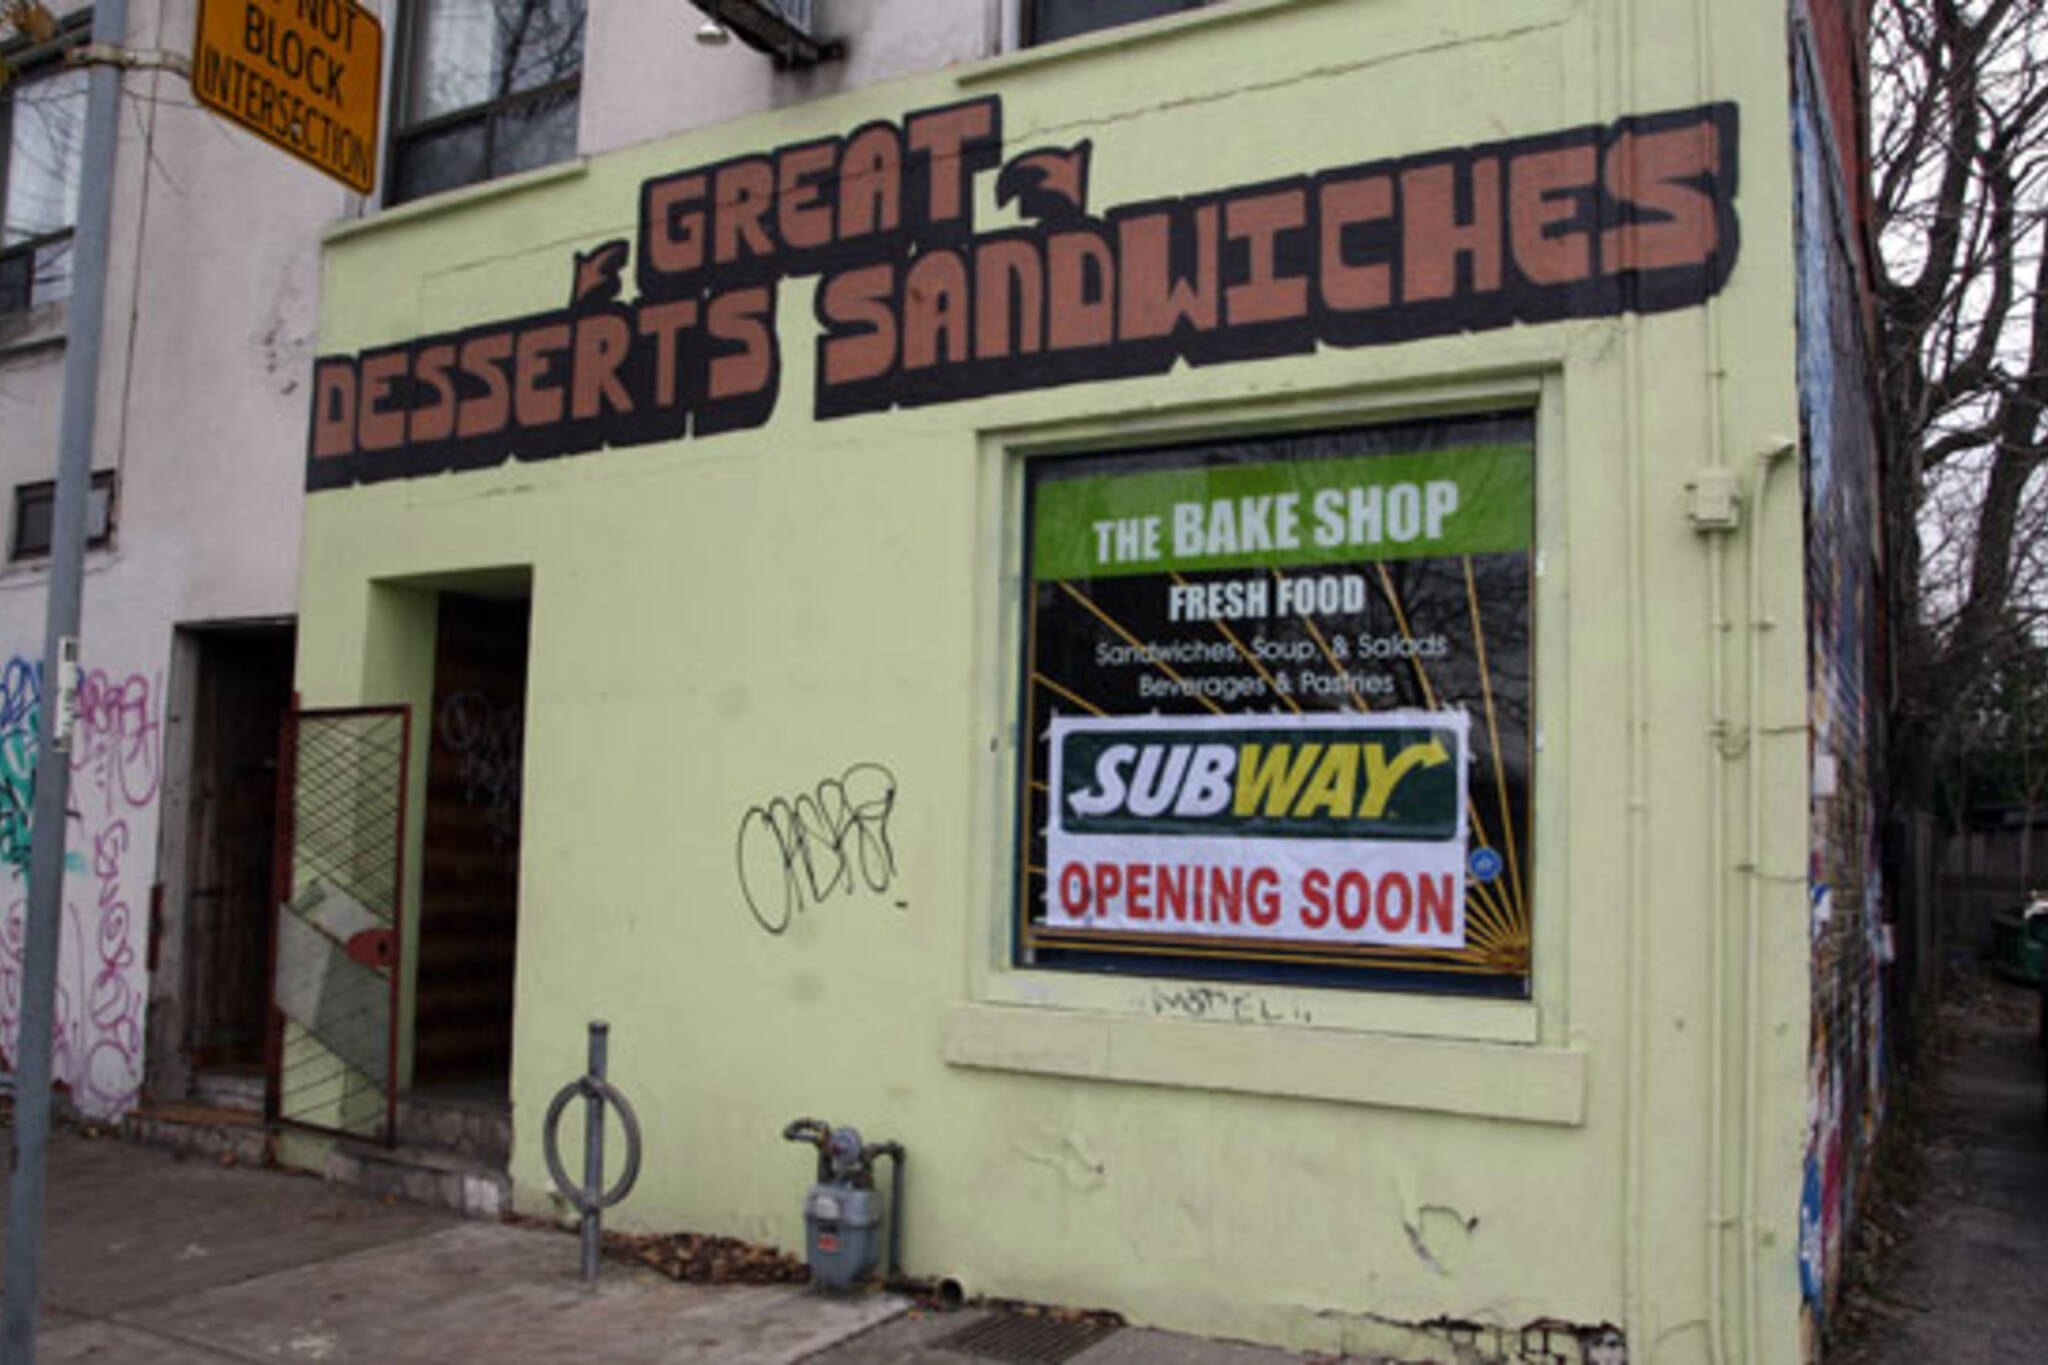 Subway Harbord